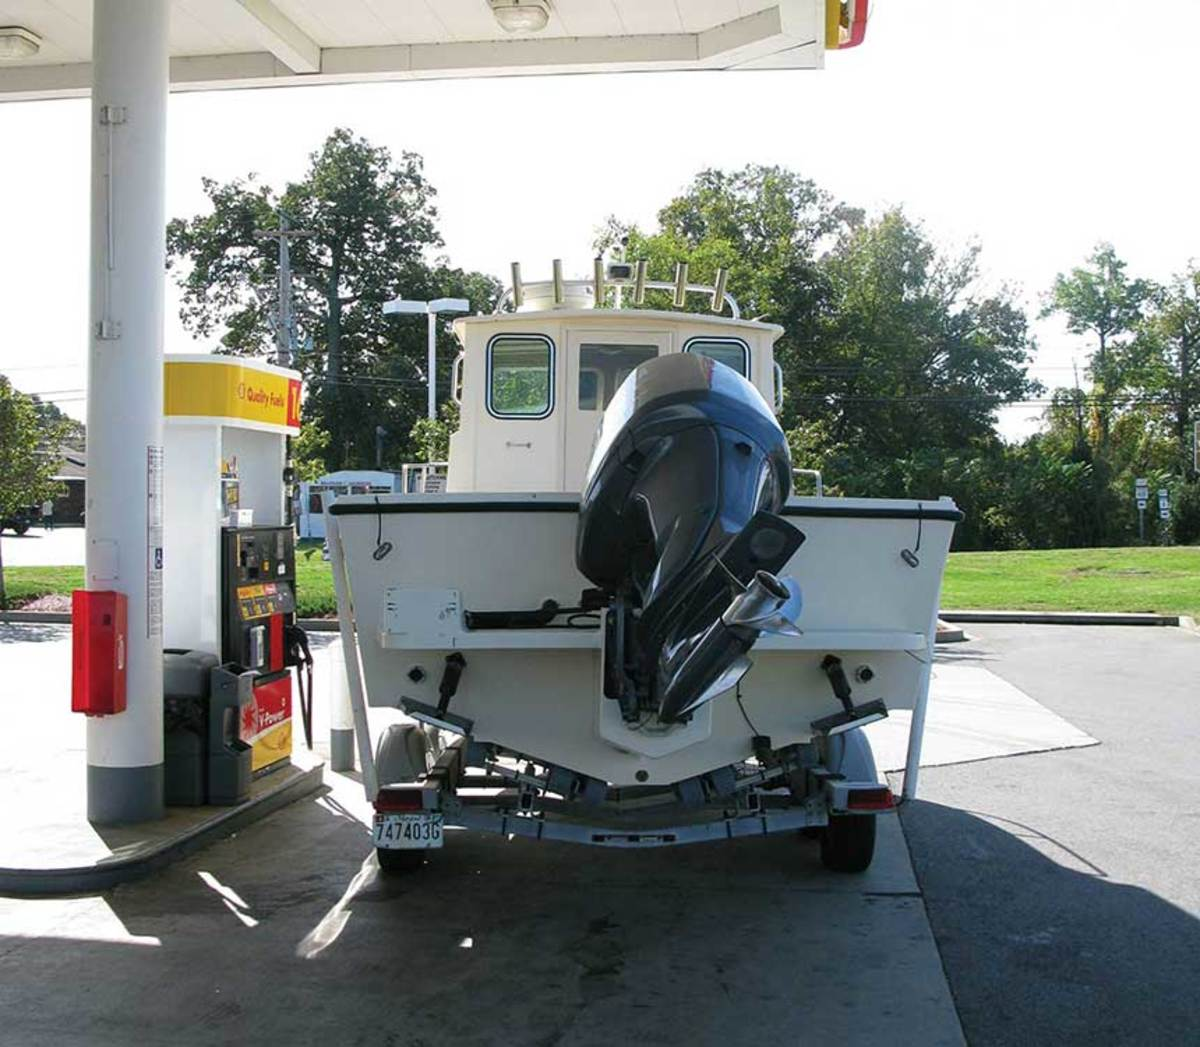 Those who trailer their boats and fill up at gas stations are most vulnerable, particularly since they often don't know if E15 is in the fuel they purchase.